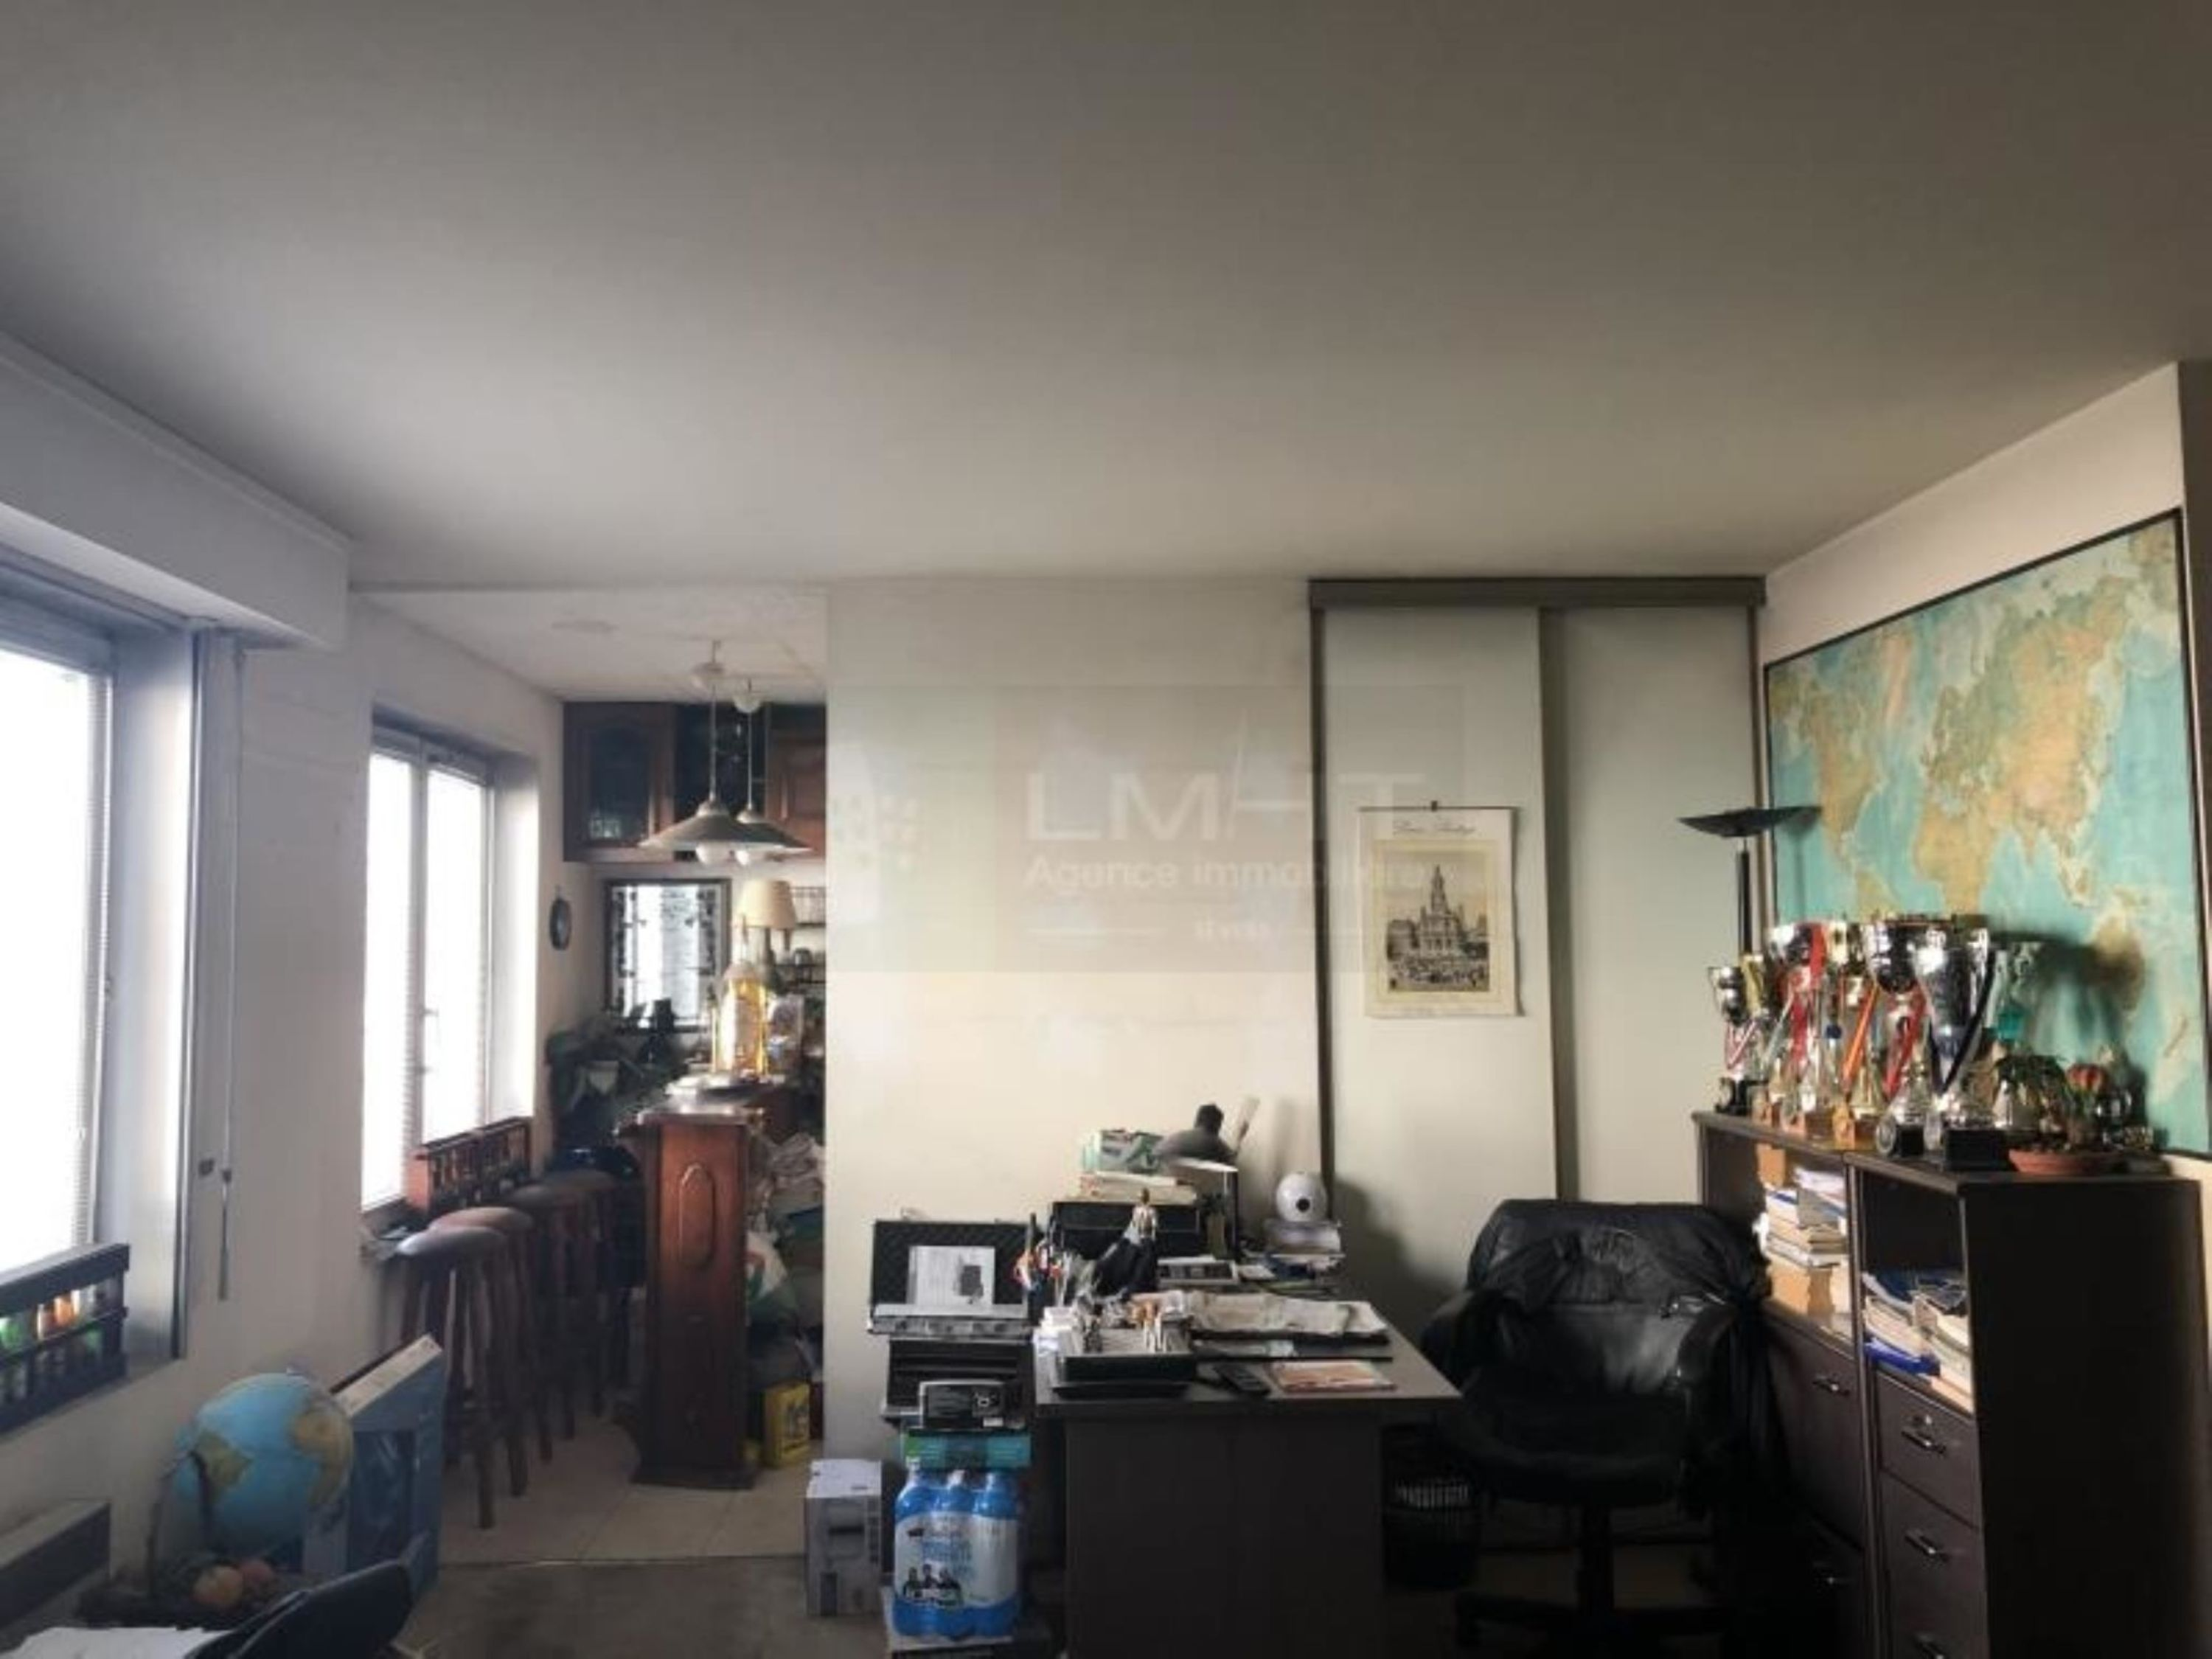 agence immobilière sevres 92 le chesnay 78 achat vente location appartement maison immobilier LMHT ANF NPPGGWGL